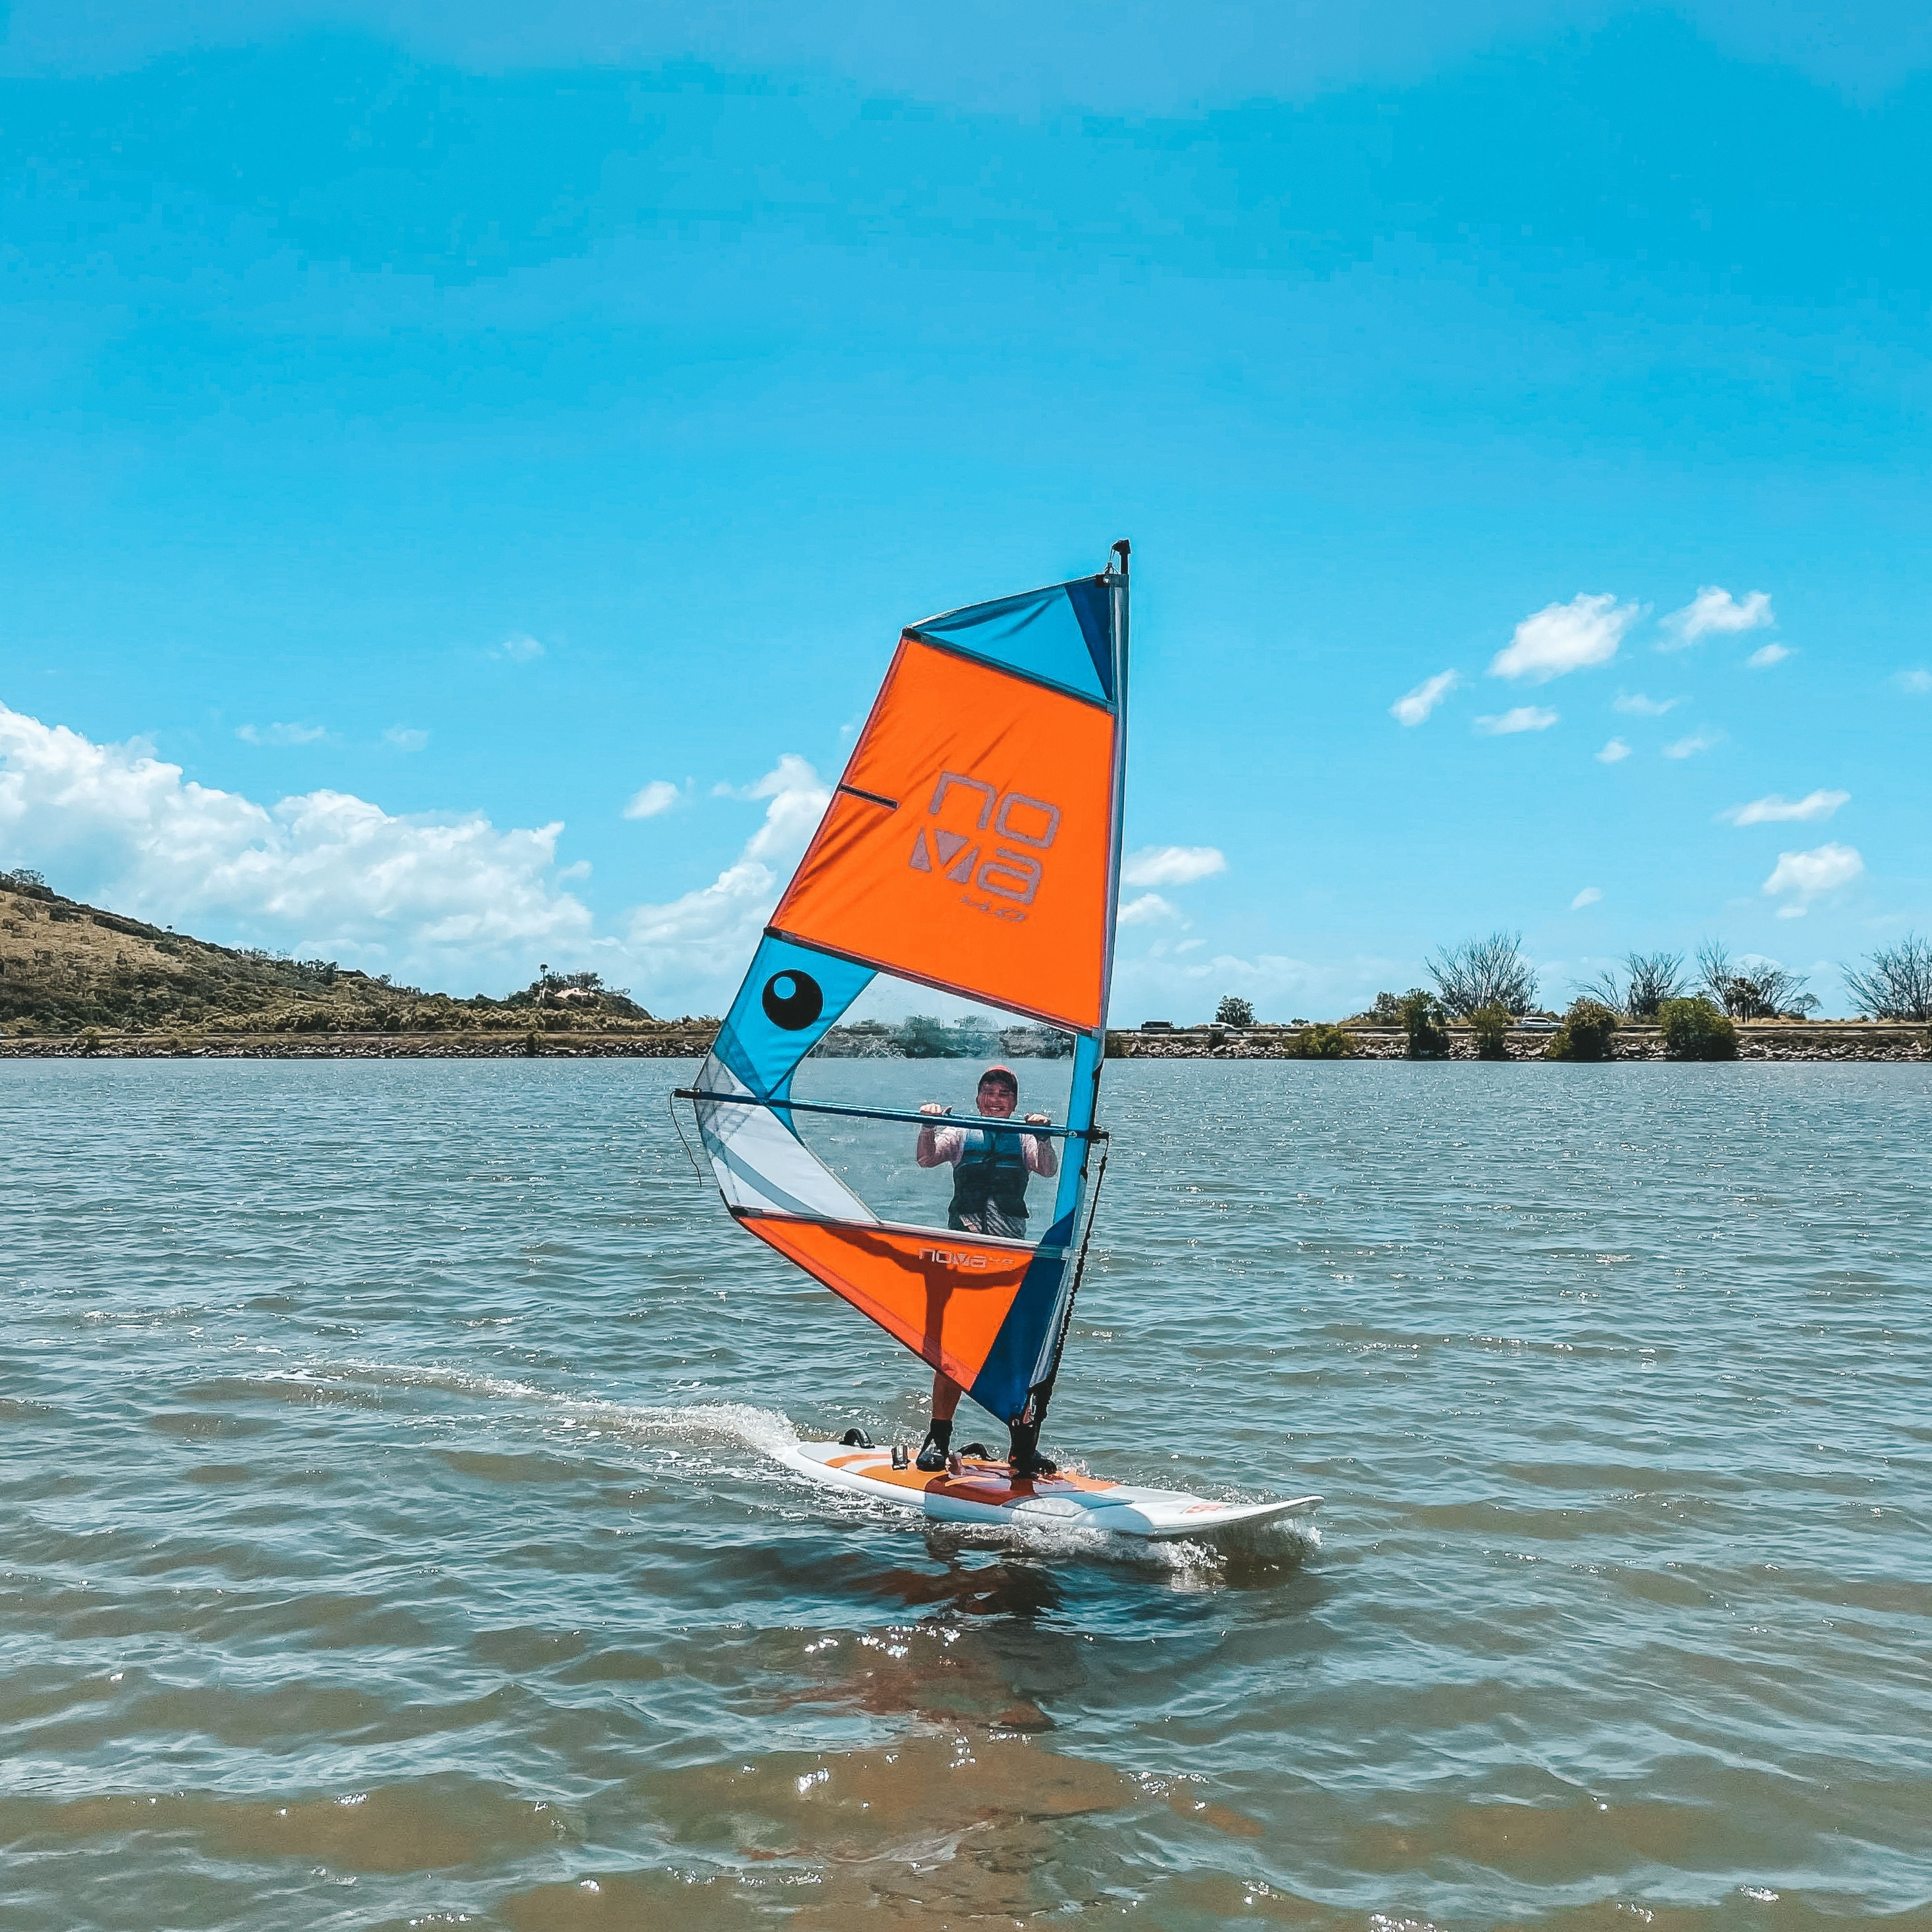 KBSC discover wind surfing